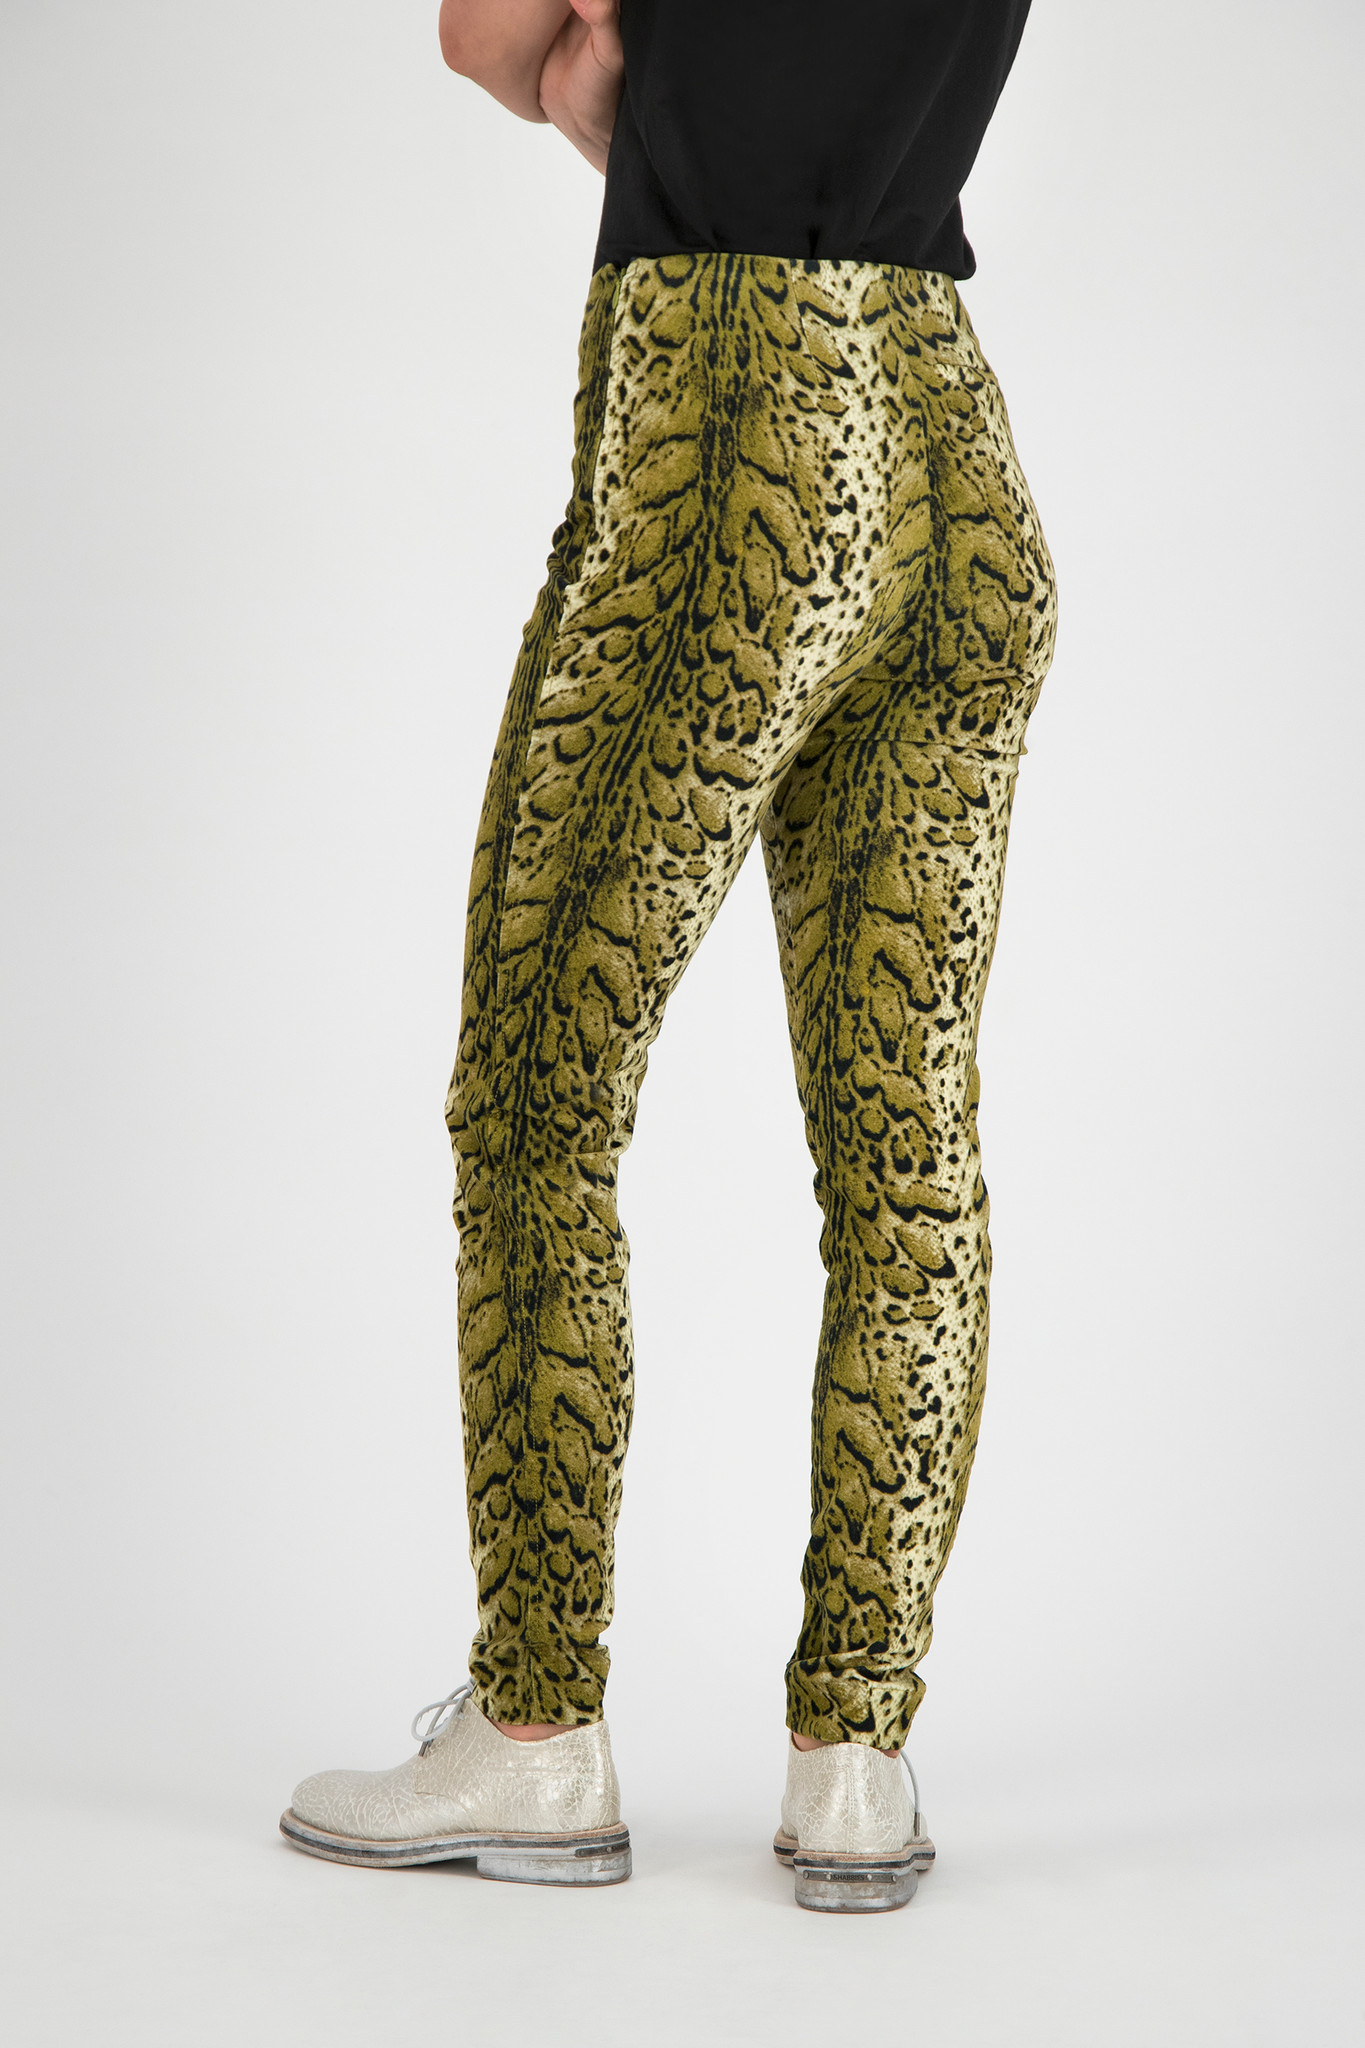 SYLVER Leopard Pants - Country